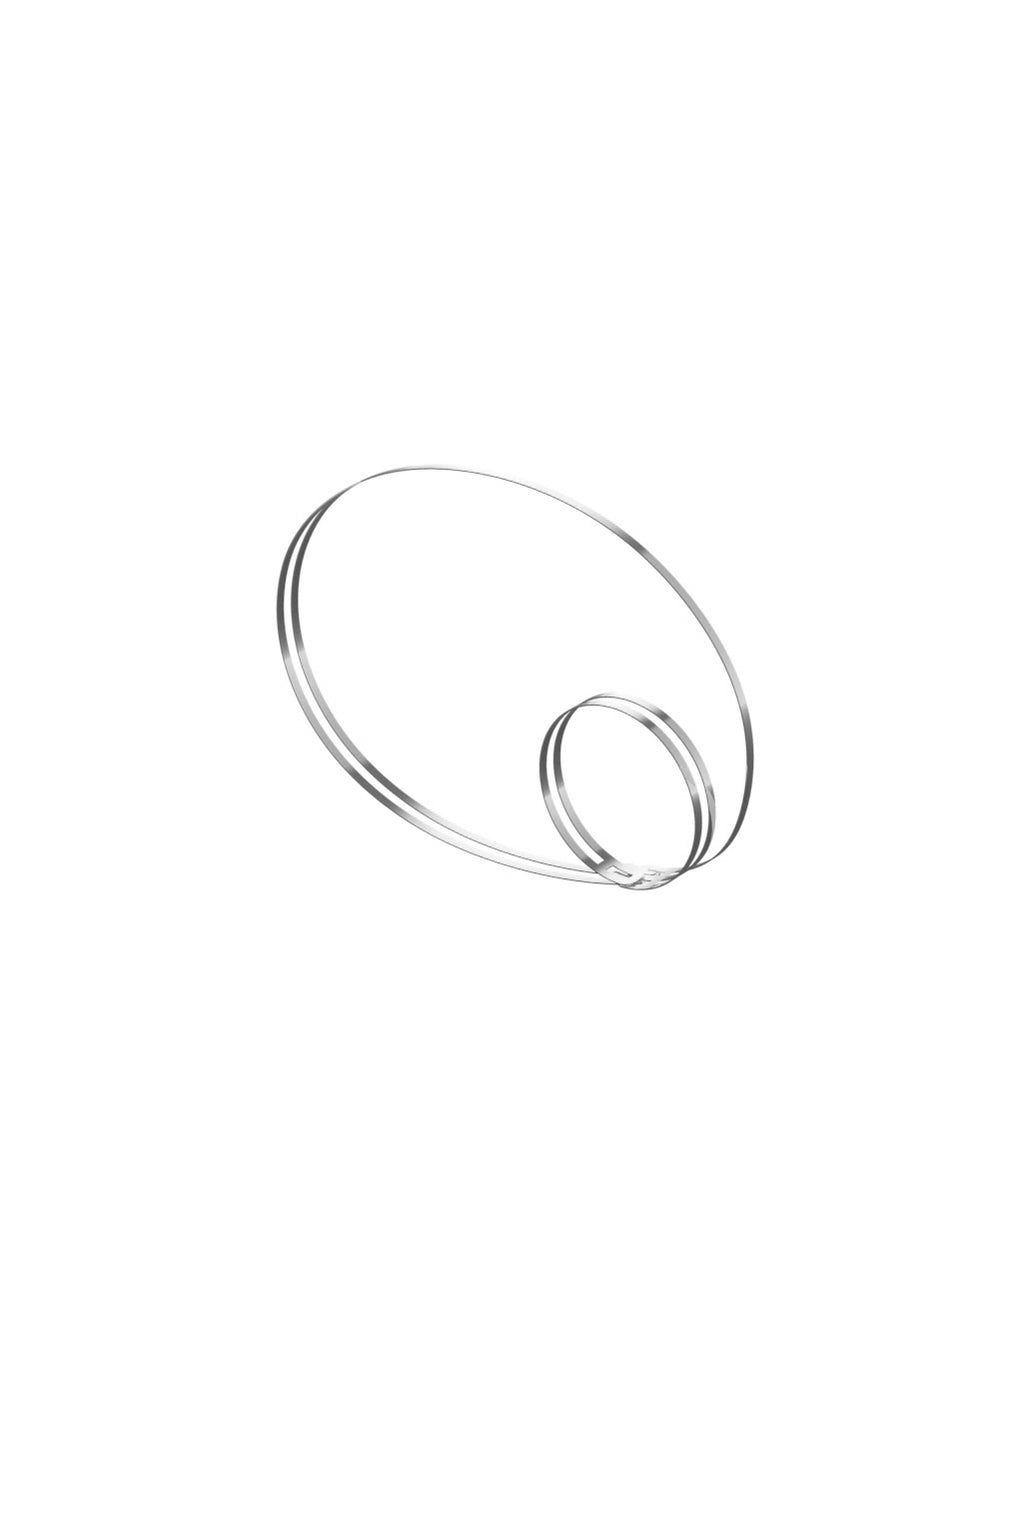 Unique feature ring